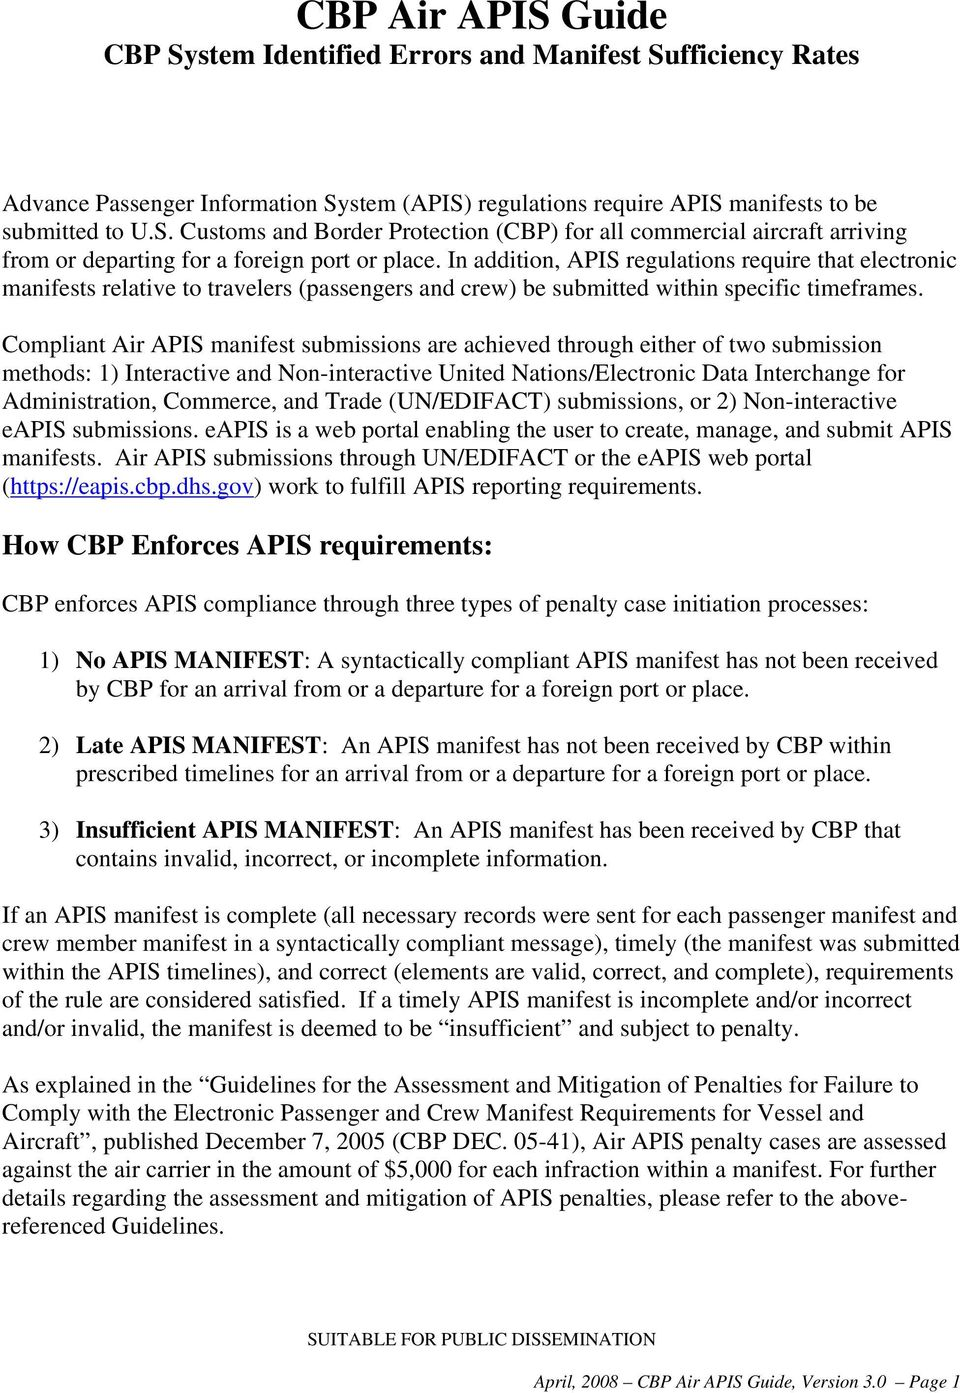 Compliant Air APIS manifest submissions are achieved through either of two submission methods: 1) Interactive and Non-interactive United Nations/Electronic Data Interchange for Administration,